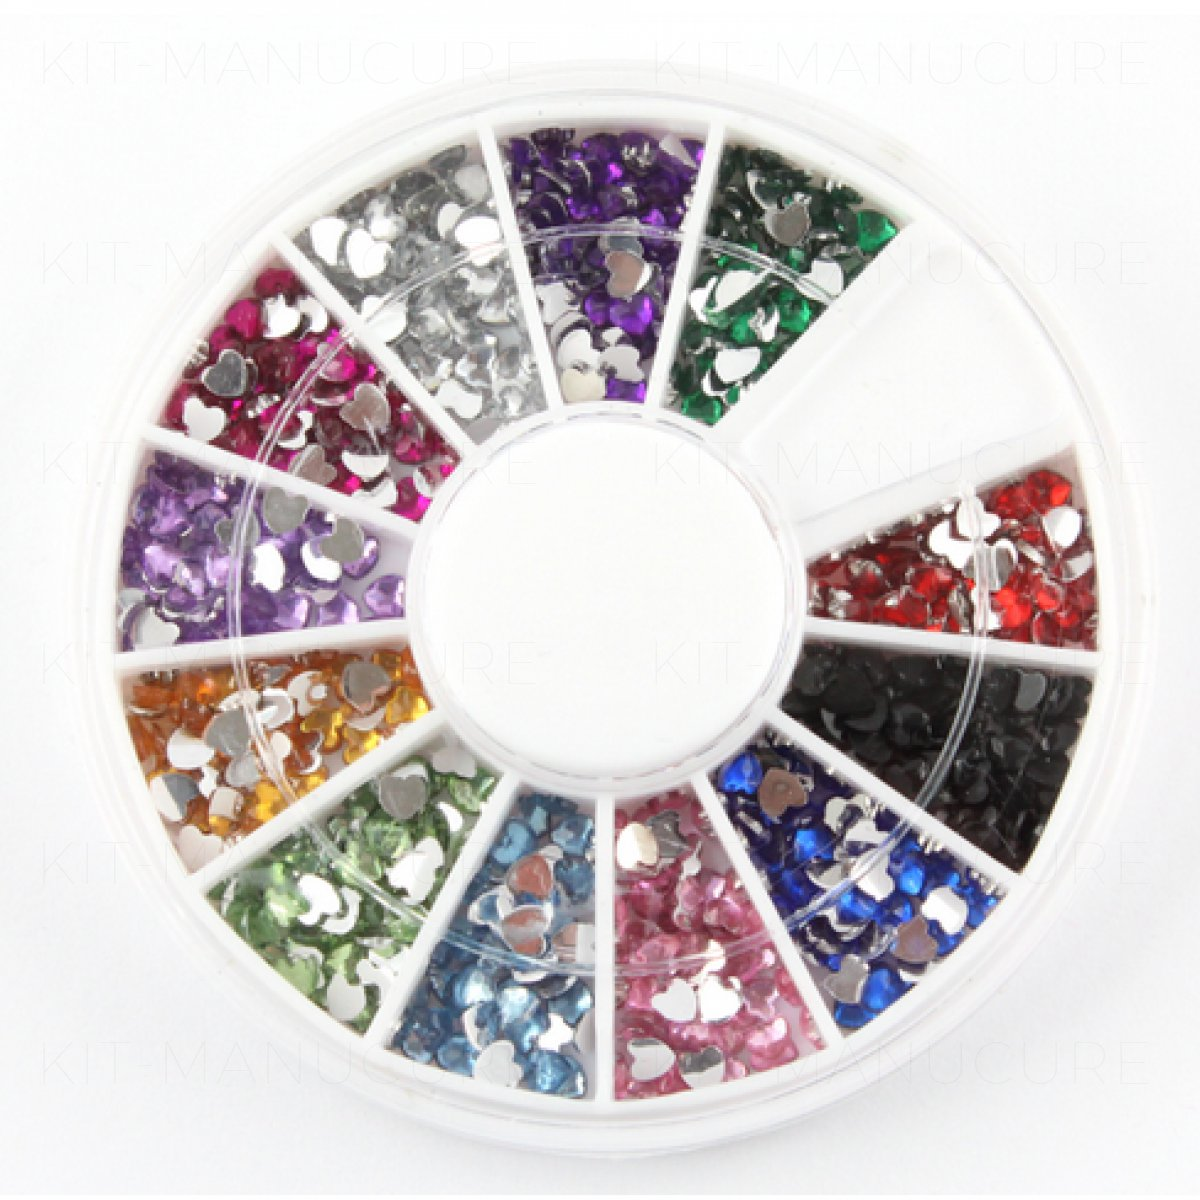 https://www.kit-manucure.com/454-thickbox_default/roue-de-strass-colorés-coeurs.jpg